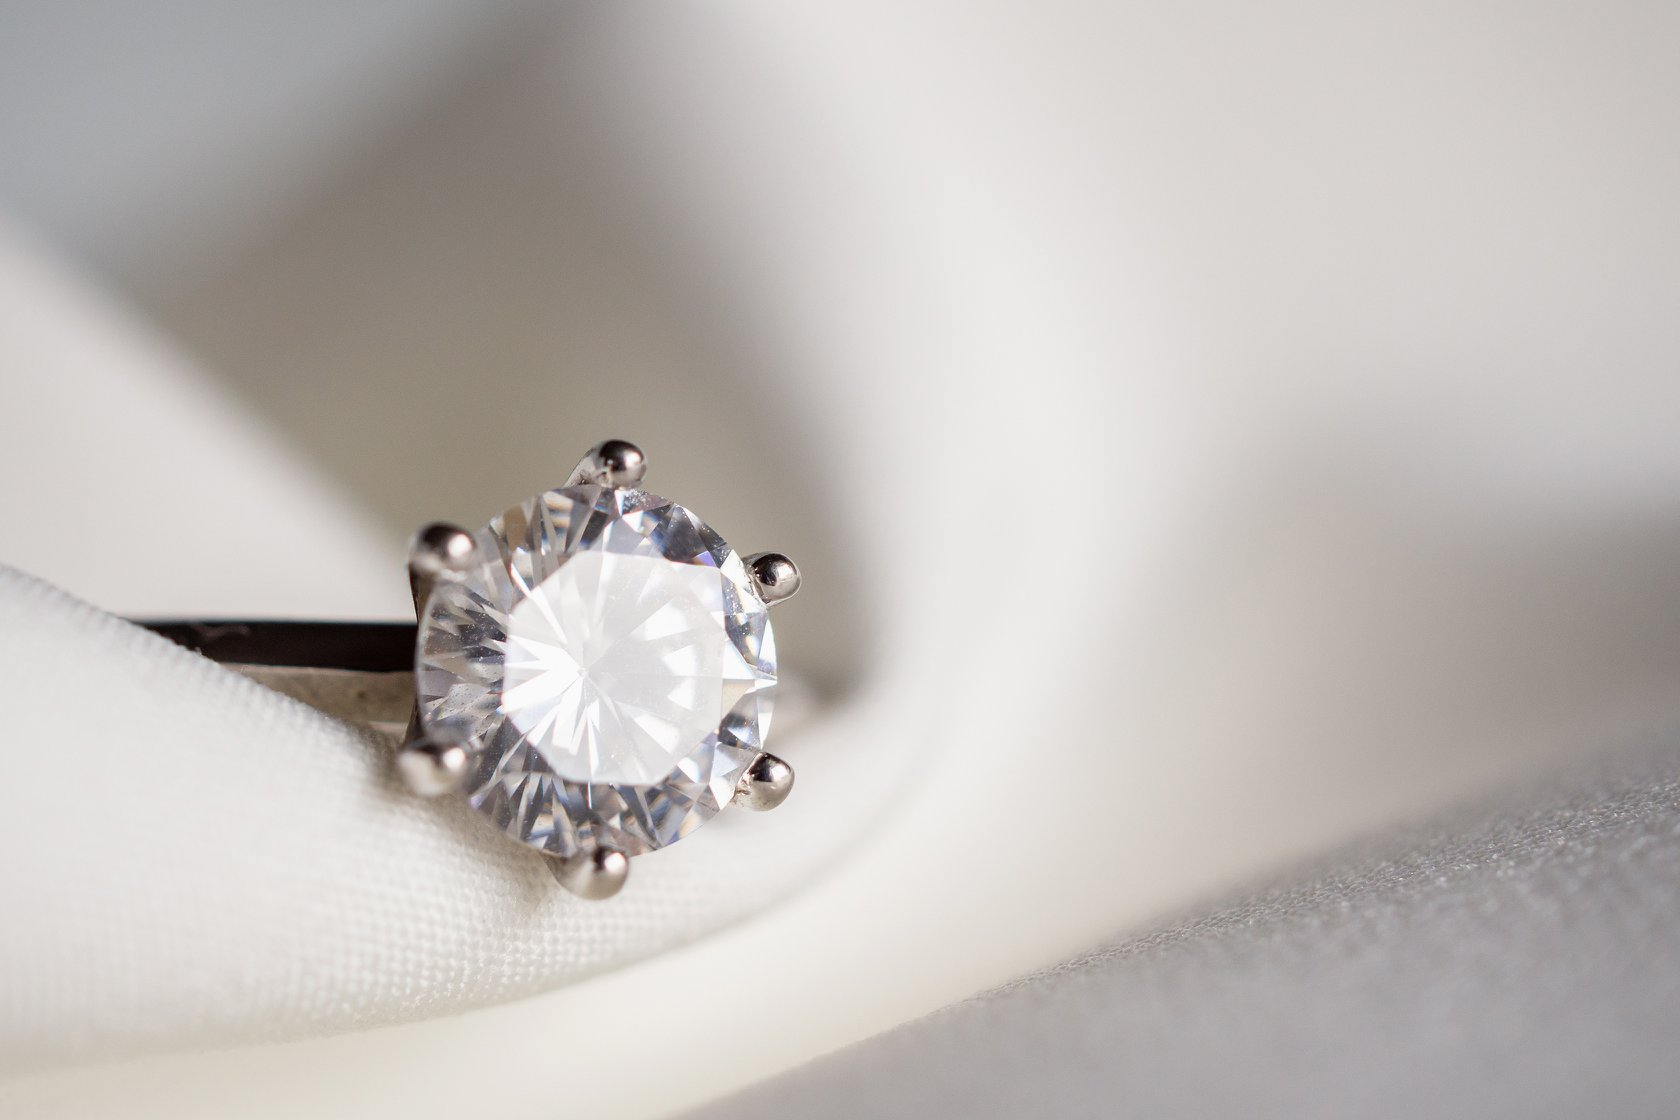 Sell Engagement Ring for Cash